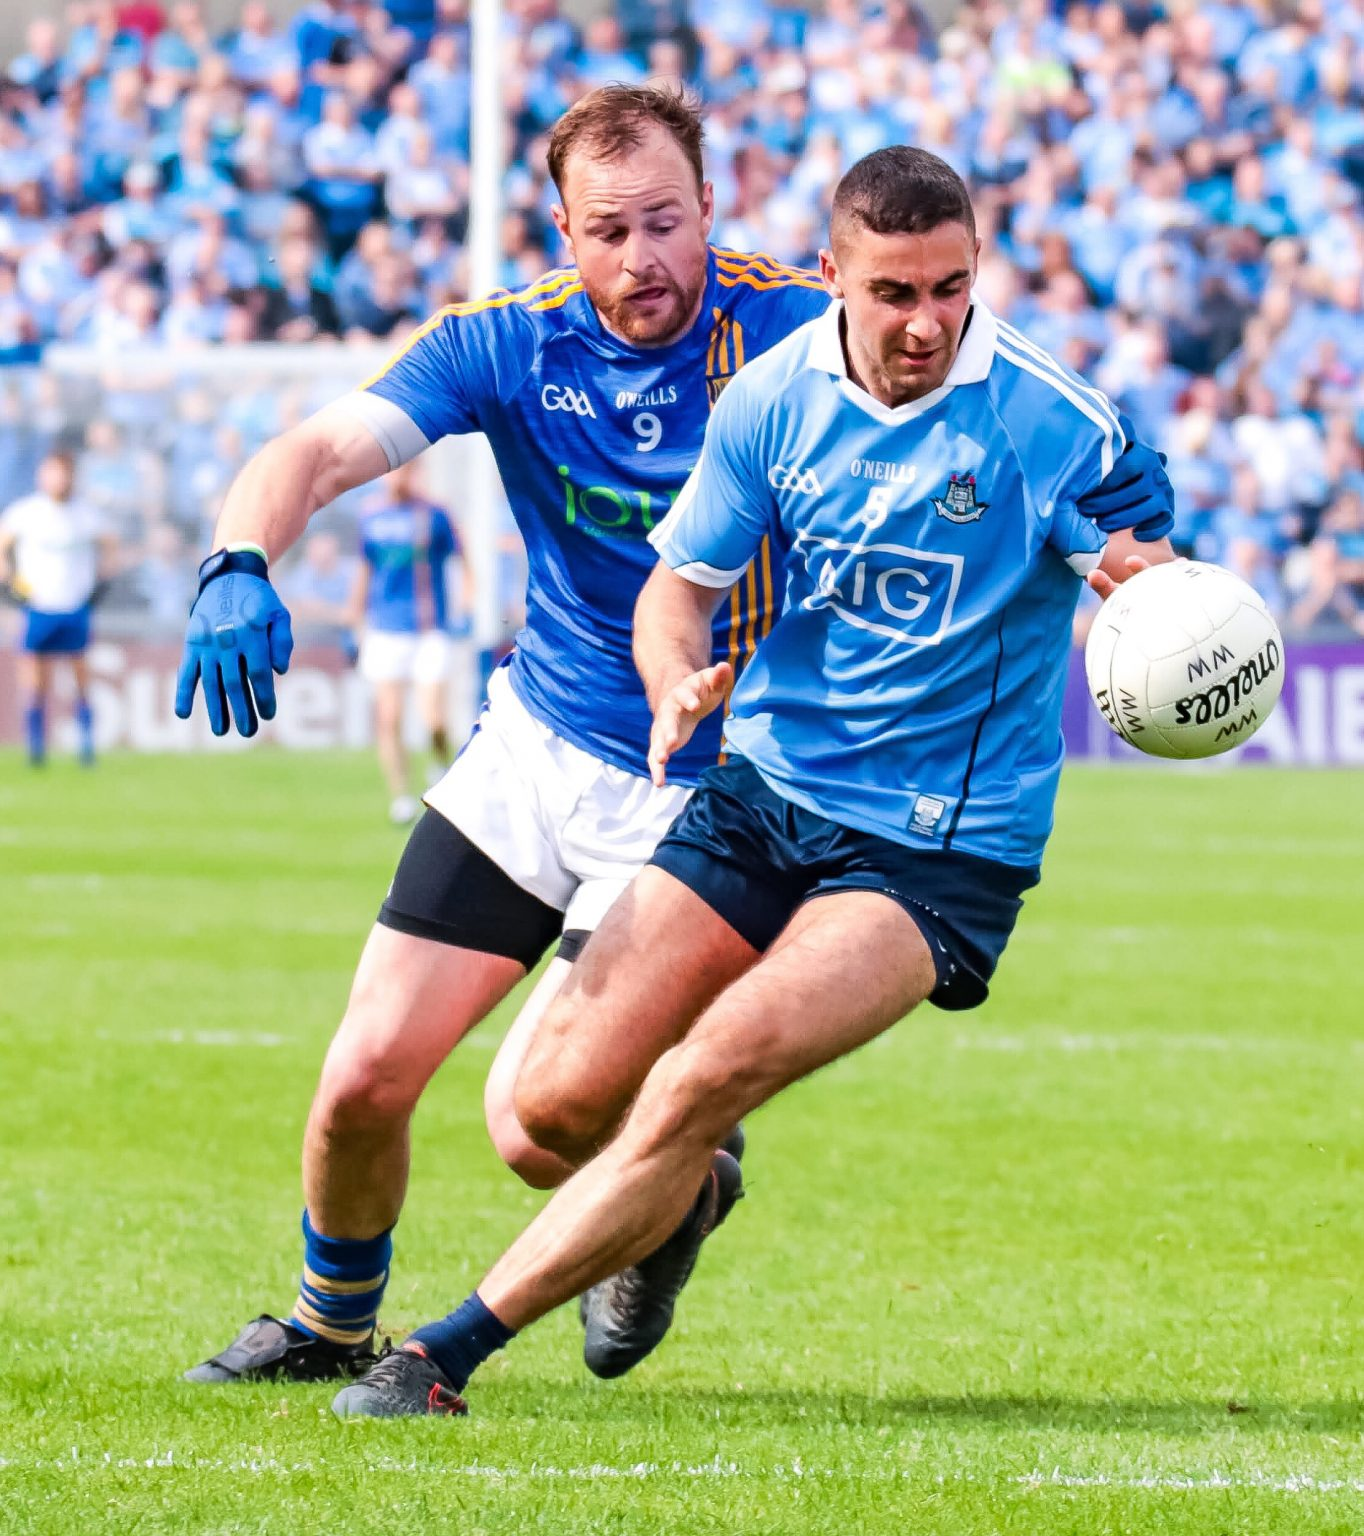 A Dublin player in a sky blue jersey and navy shorts battling for the ball with a Wicklow player in a blue jersey with yellow stripes as Dublin maintained the unbeaten away record